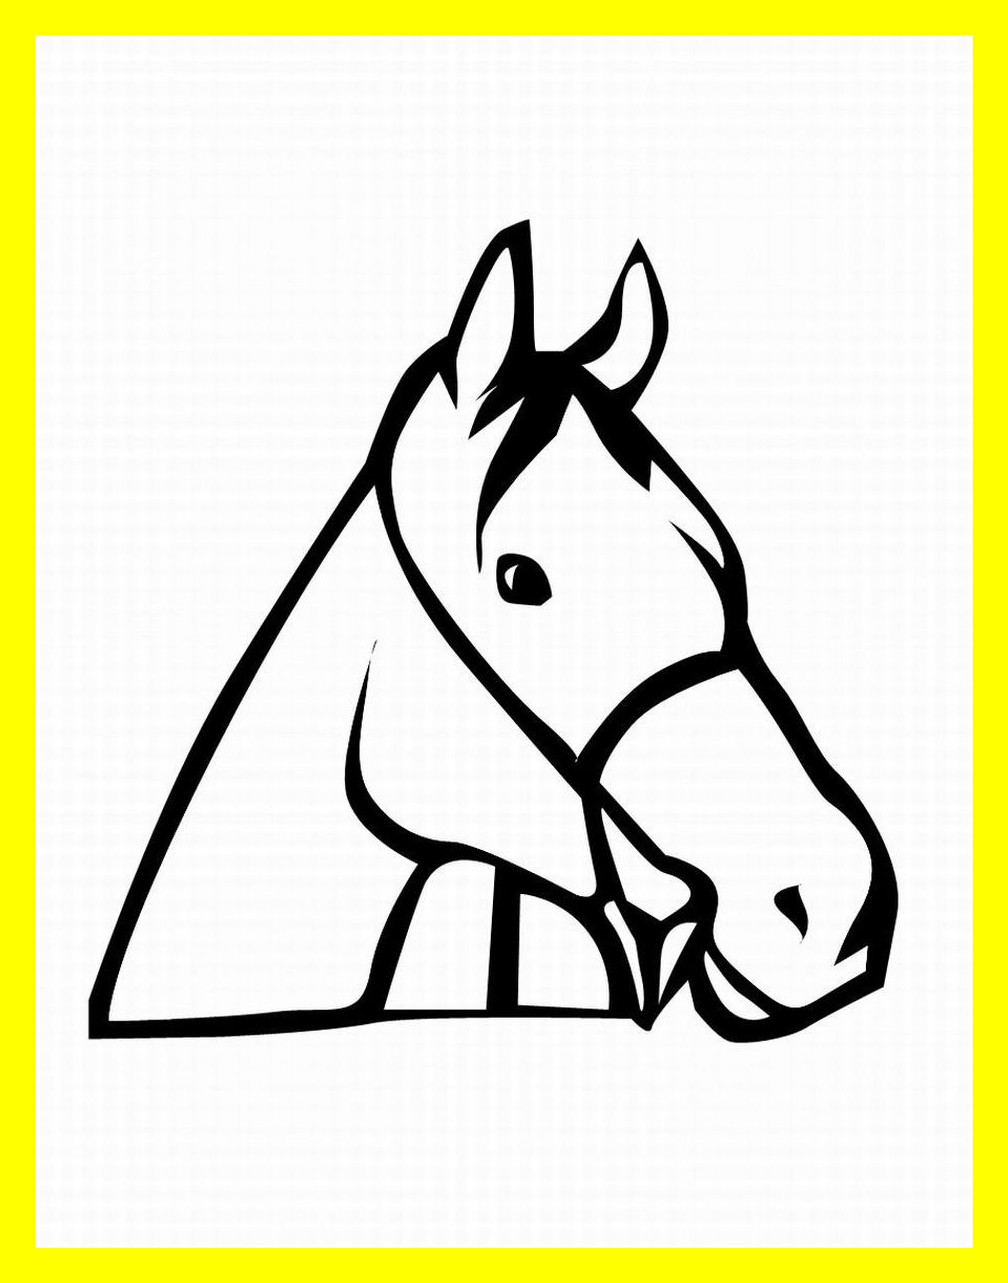 Horse Head Front View Drawing at GetDrawings.com | Free for personal ...